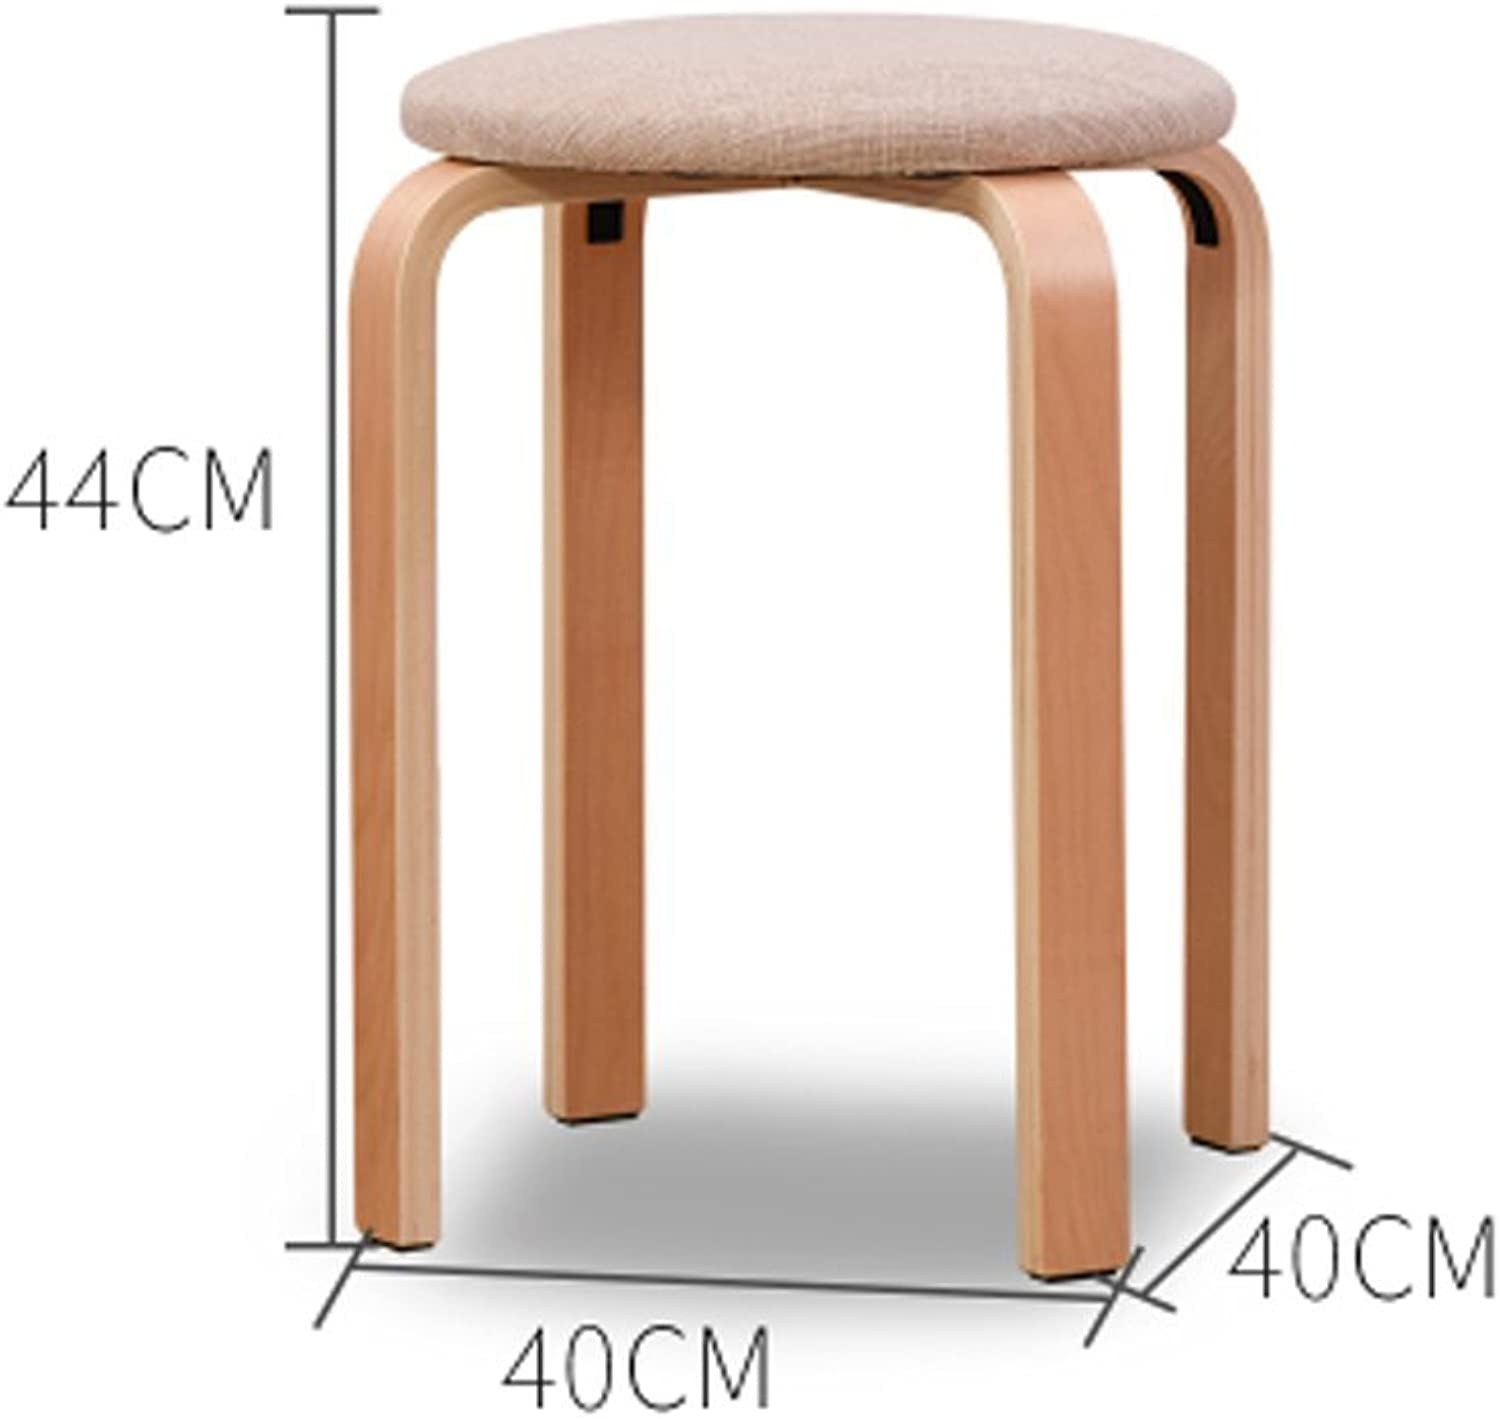 Solid Wood Stool Home Bench Fashion Creative Table Stool Adult Simple shoes Stool Wooden Stool(40x40x44cm) 0522A (color   White)